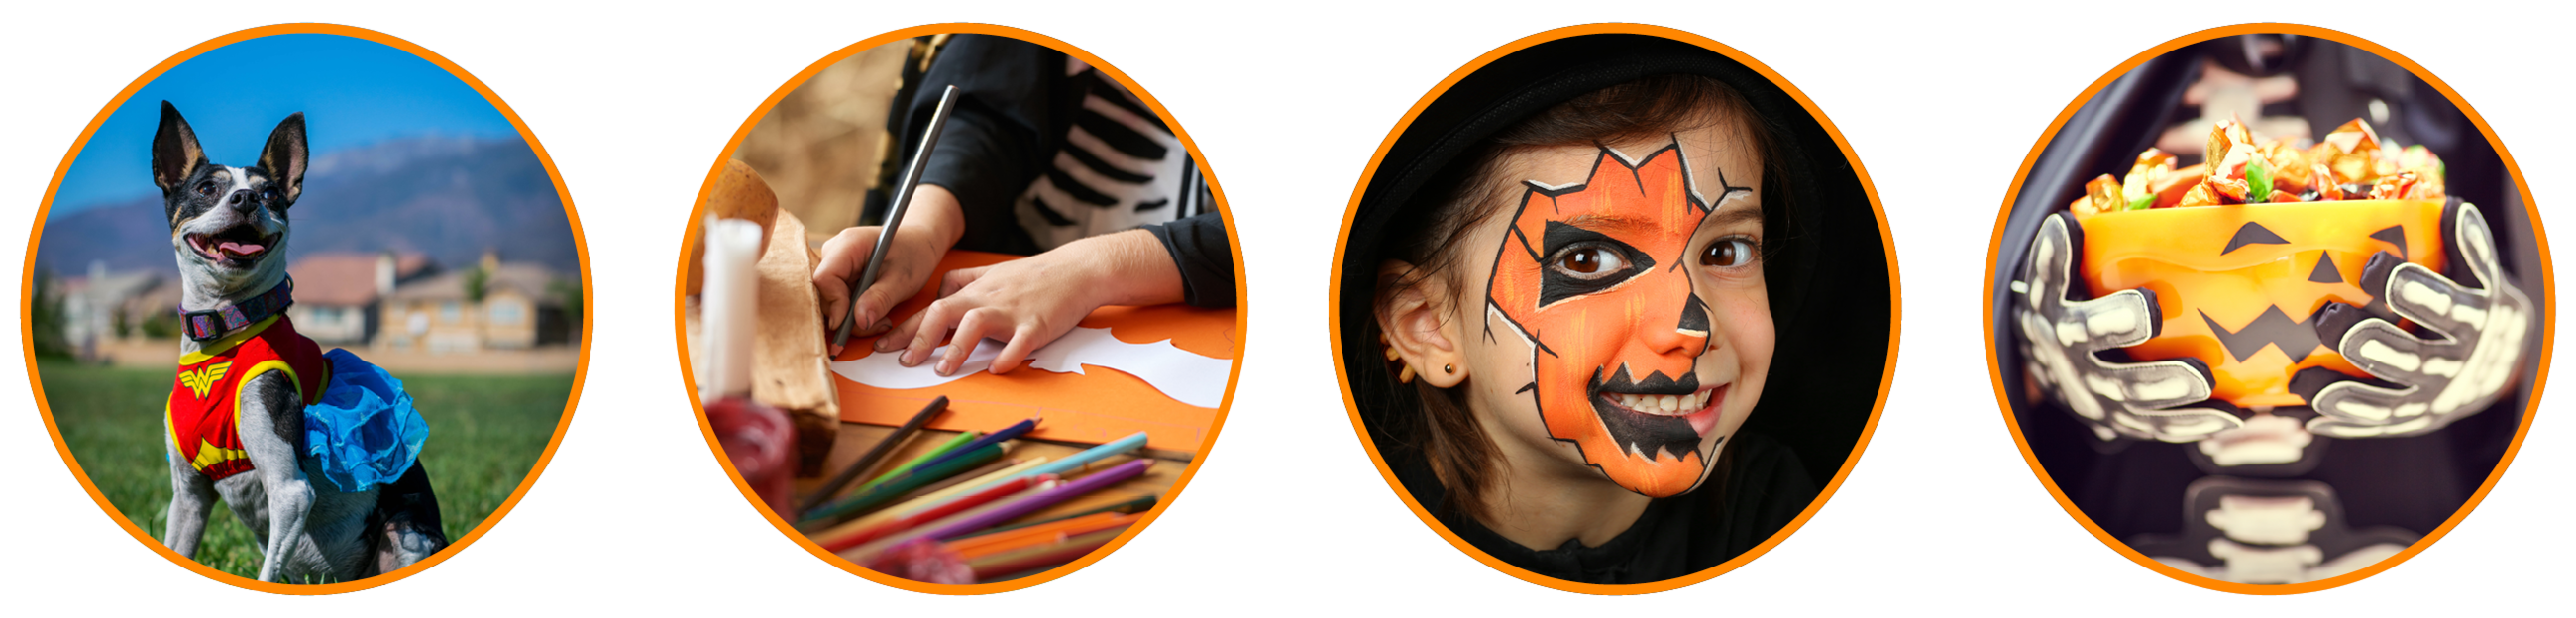 Web banner with four Halloween images